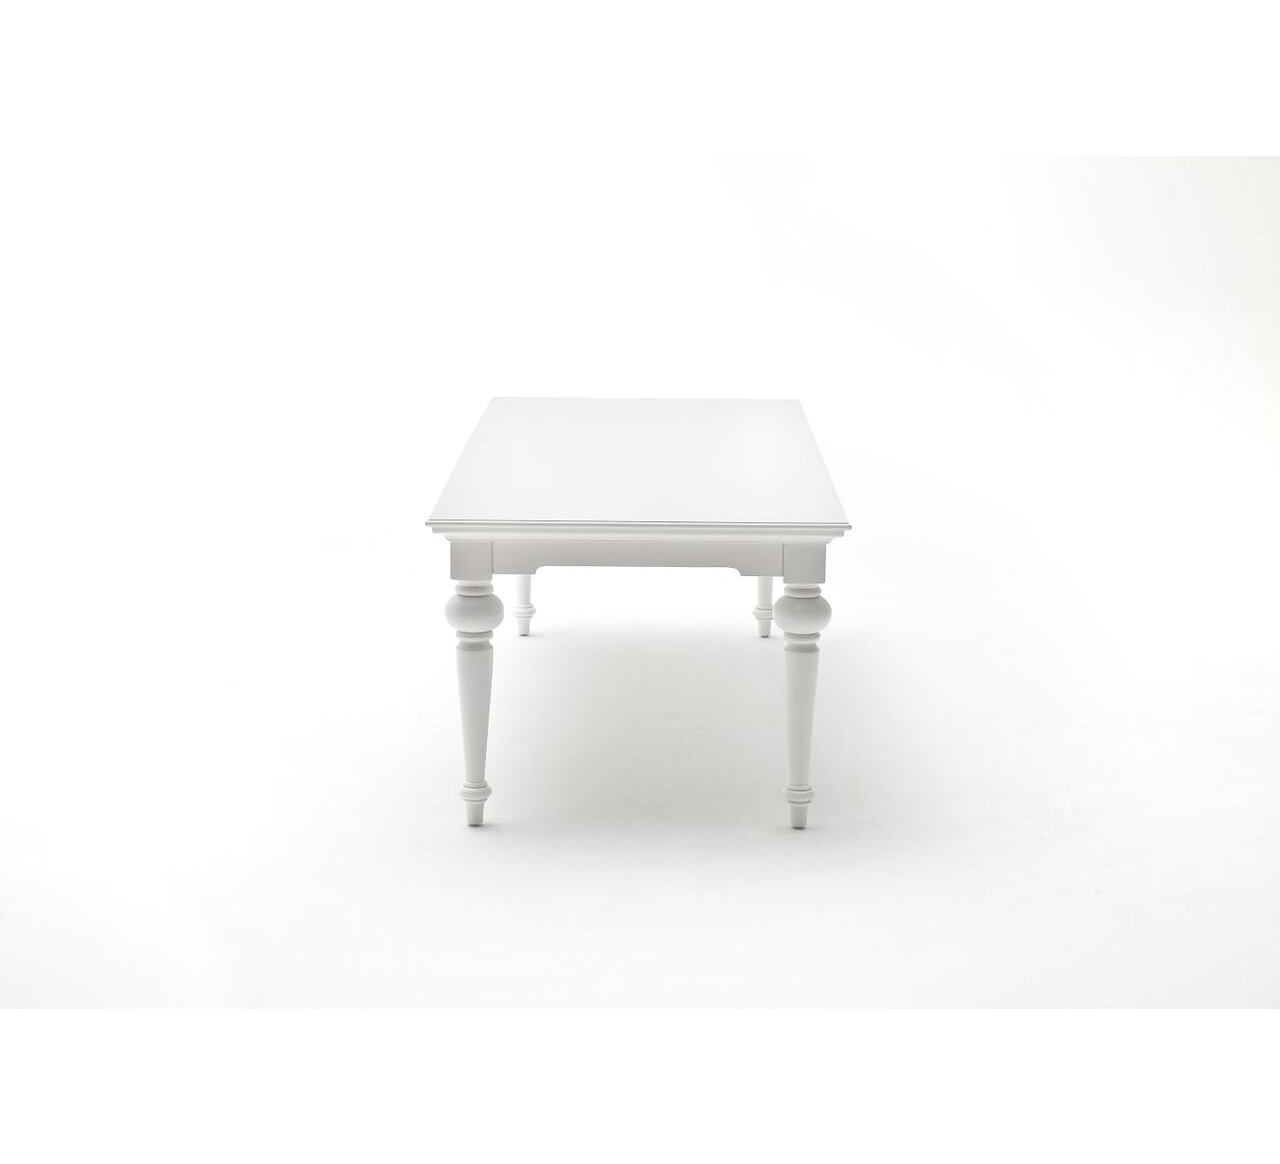 Table Rectangulaire Blanche Table De Salle à Manger Rectangulaire 240cm Quotblanche Quot 6521